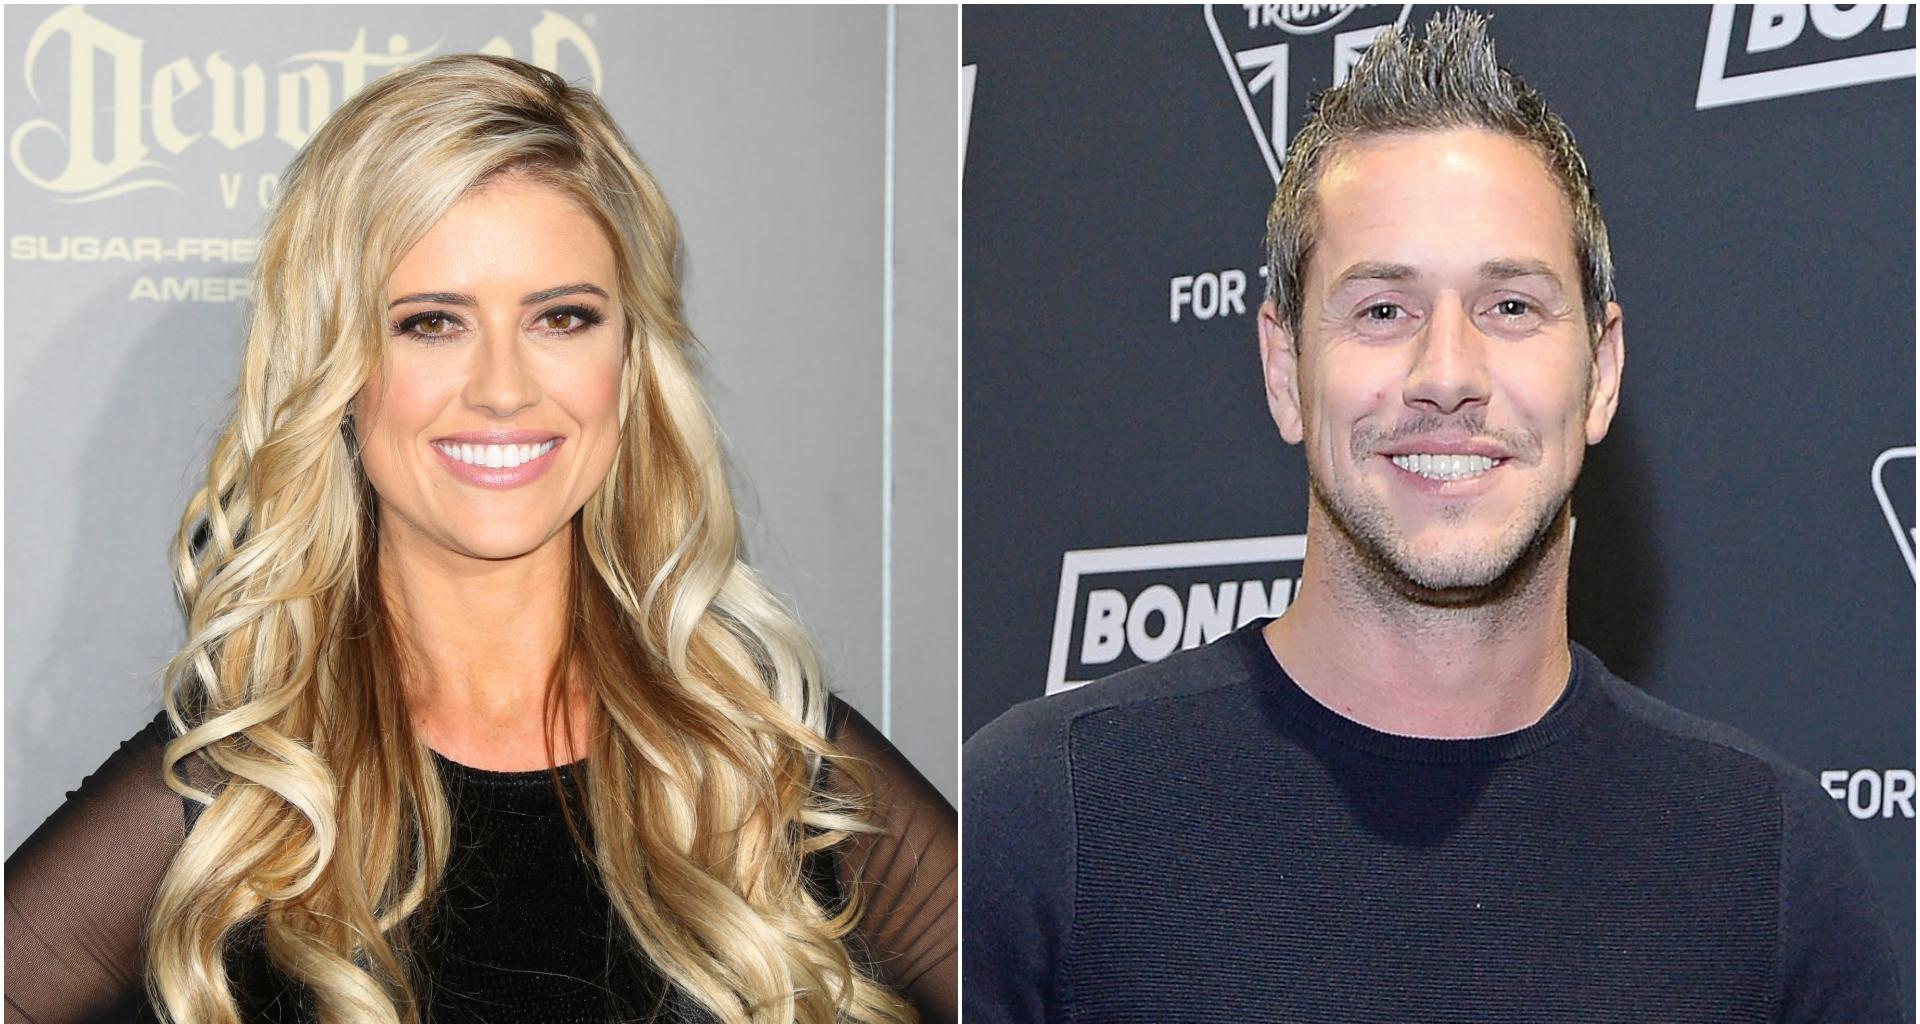 Christina El Moussa And Ant Anstead Expecting Their First Child Together - See The Cute Announcement!